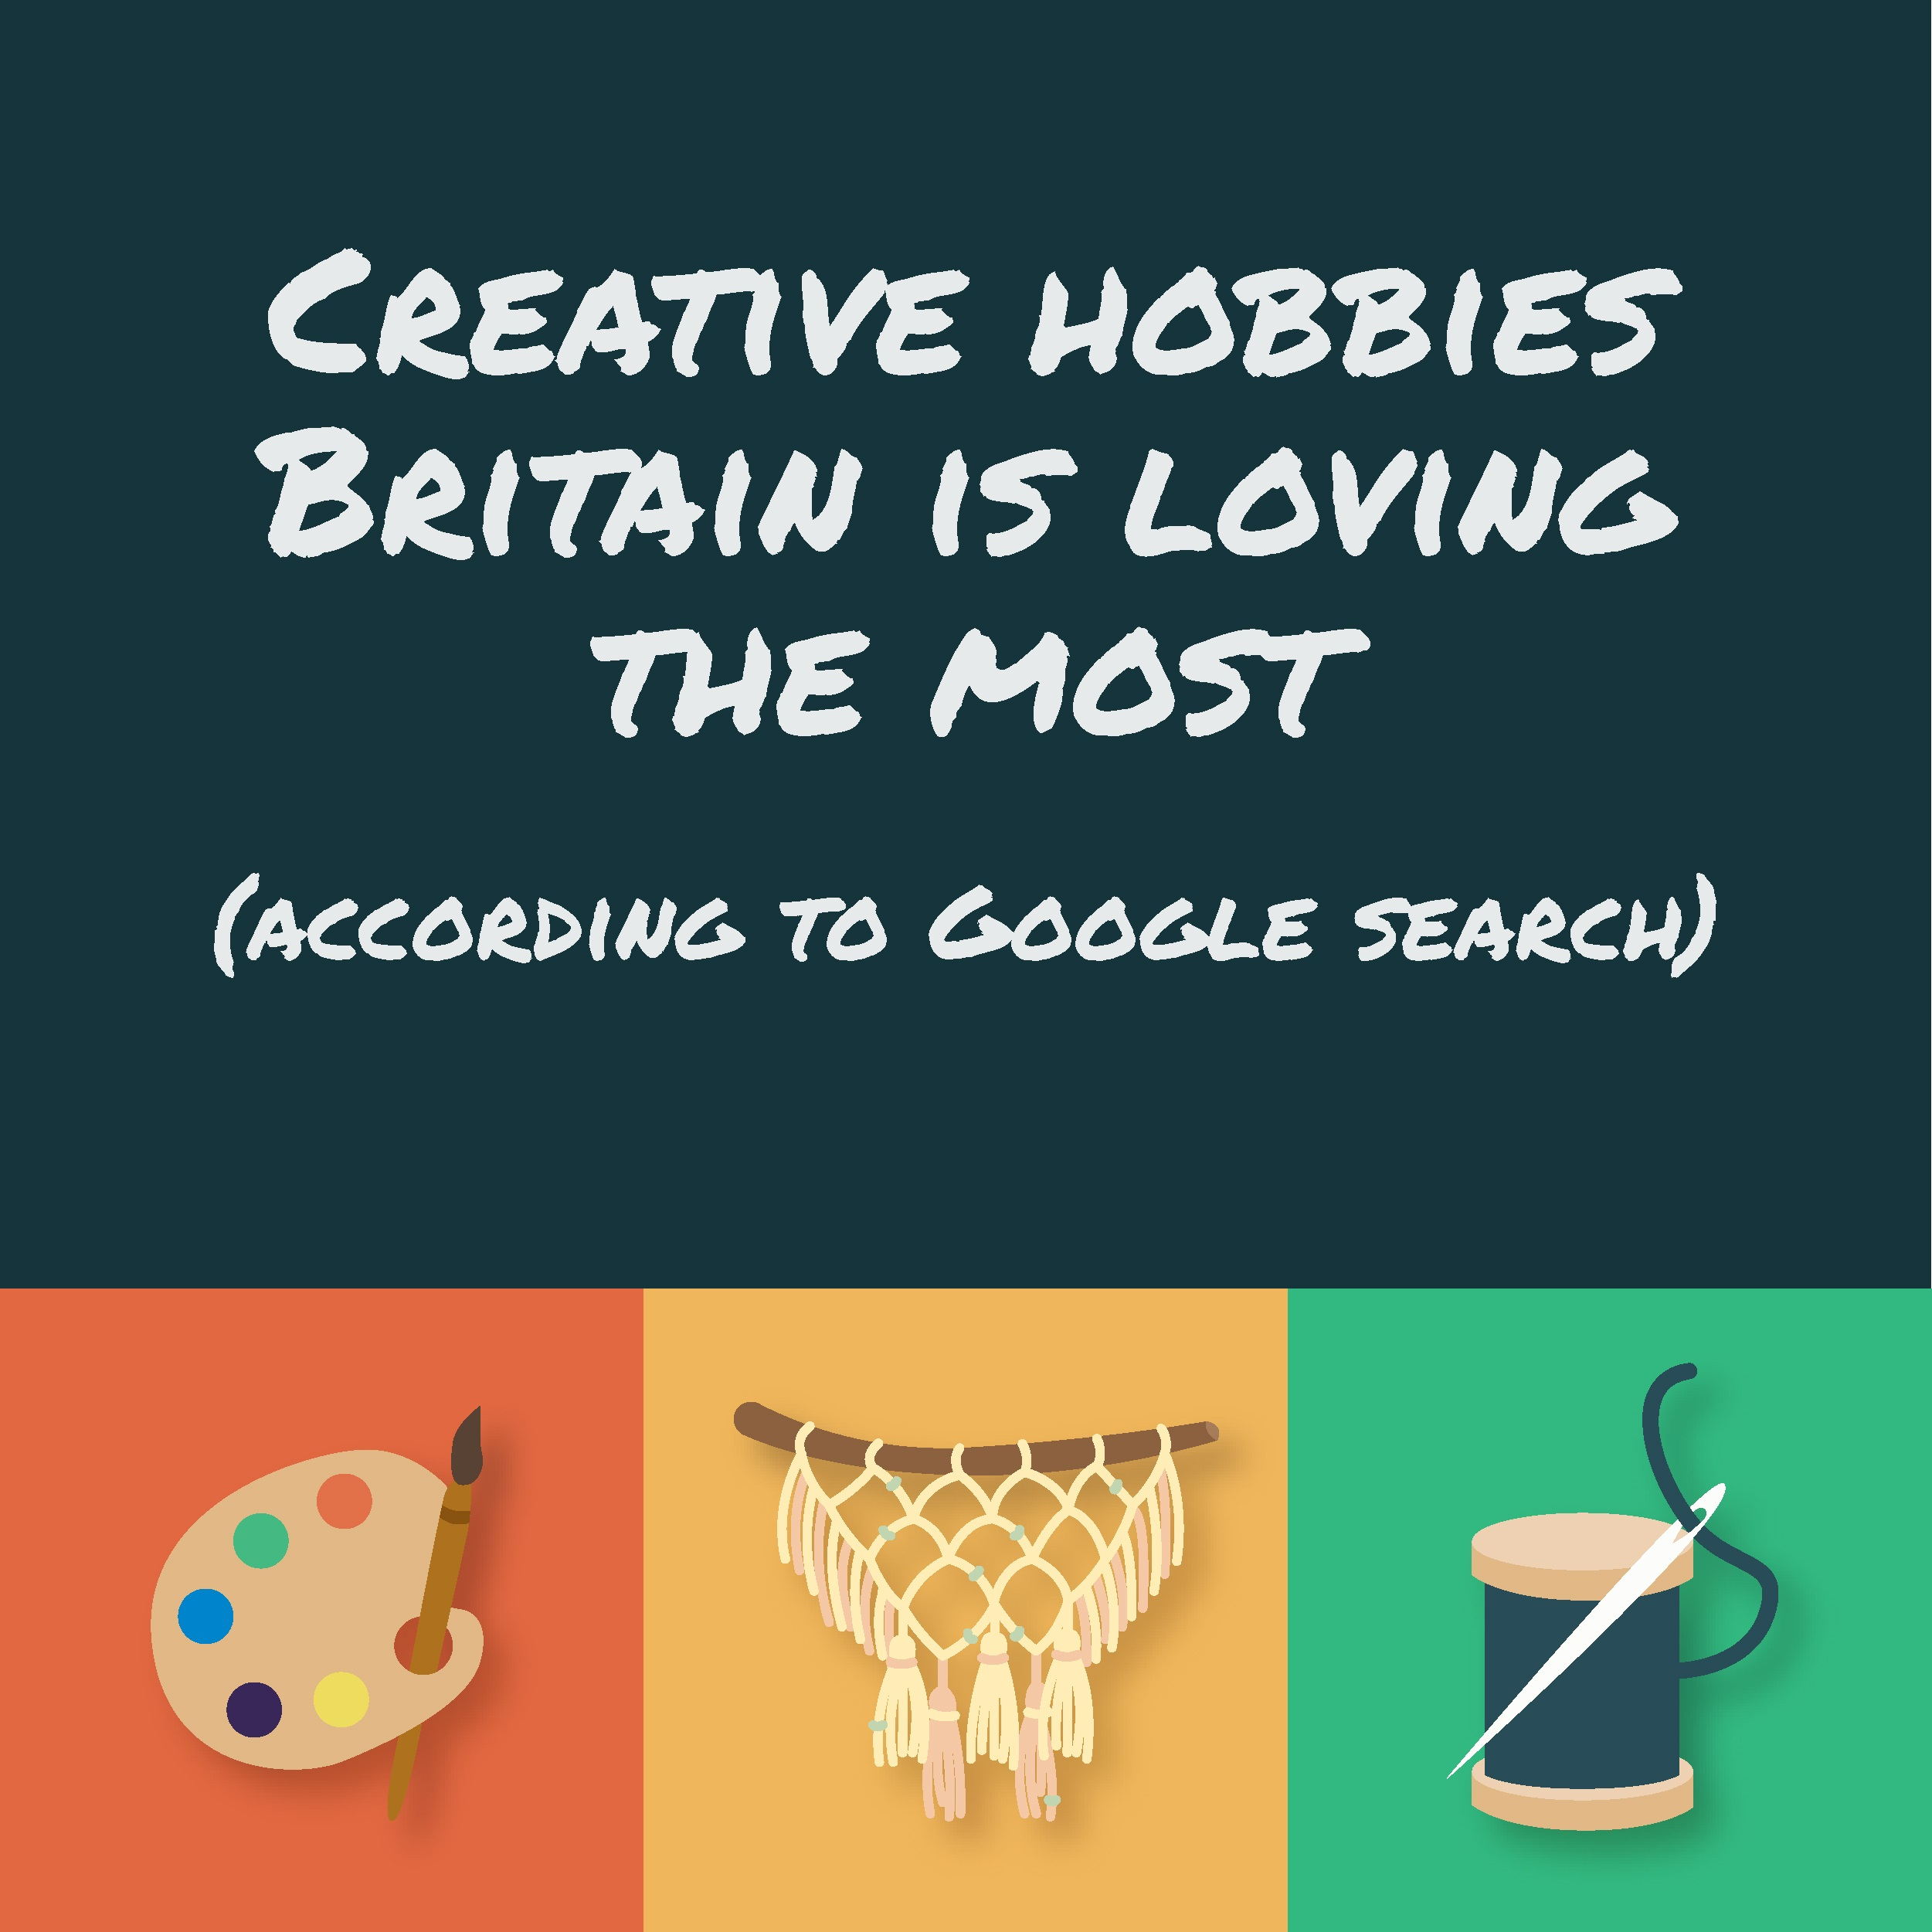 Creative hobbies Britain is loving the most